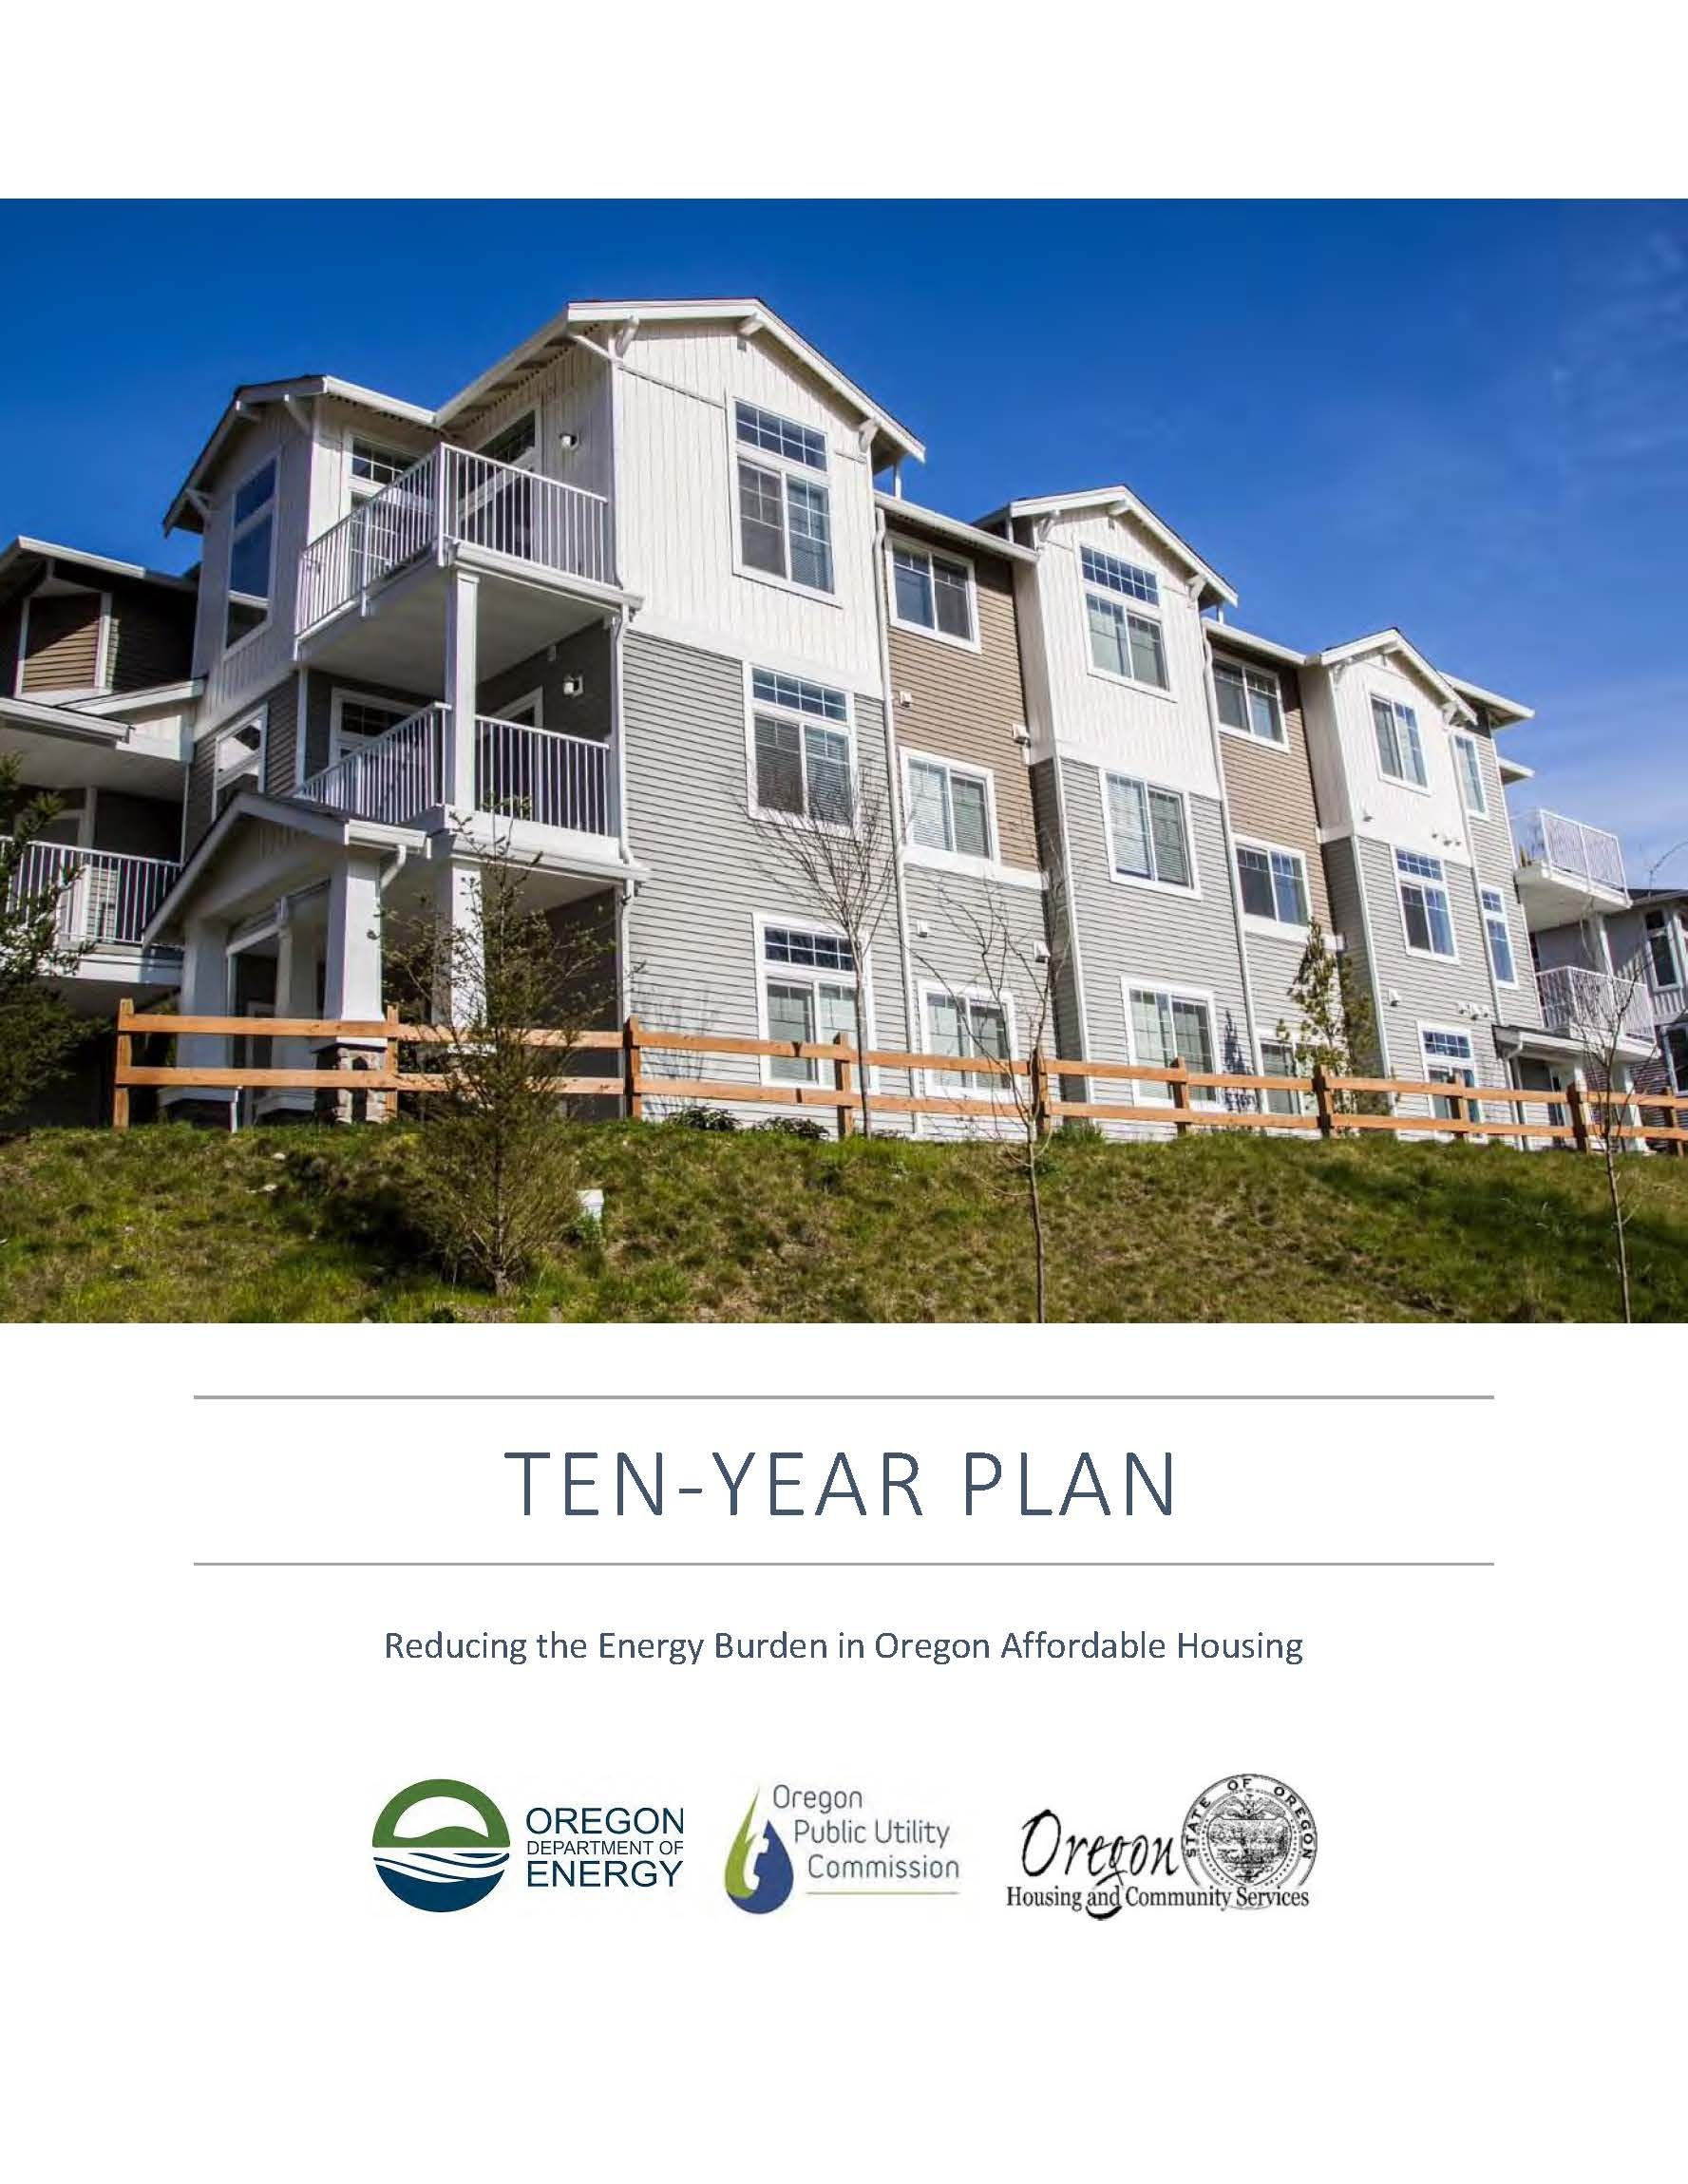 Ten Year Plan Reducing The Energy Burden In Oregon Affordable Housing By Oregon Department Of Energy Public Year Plan Affordable Housing Community Service